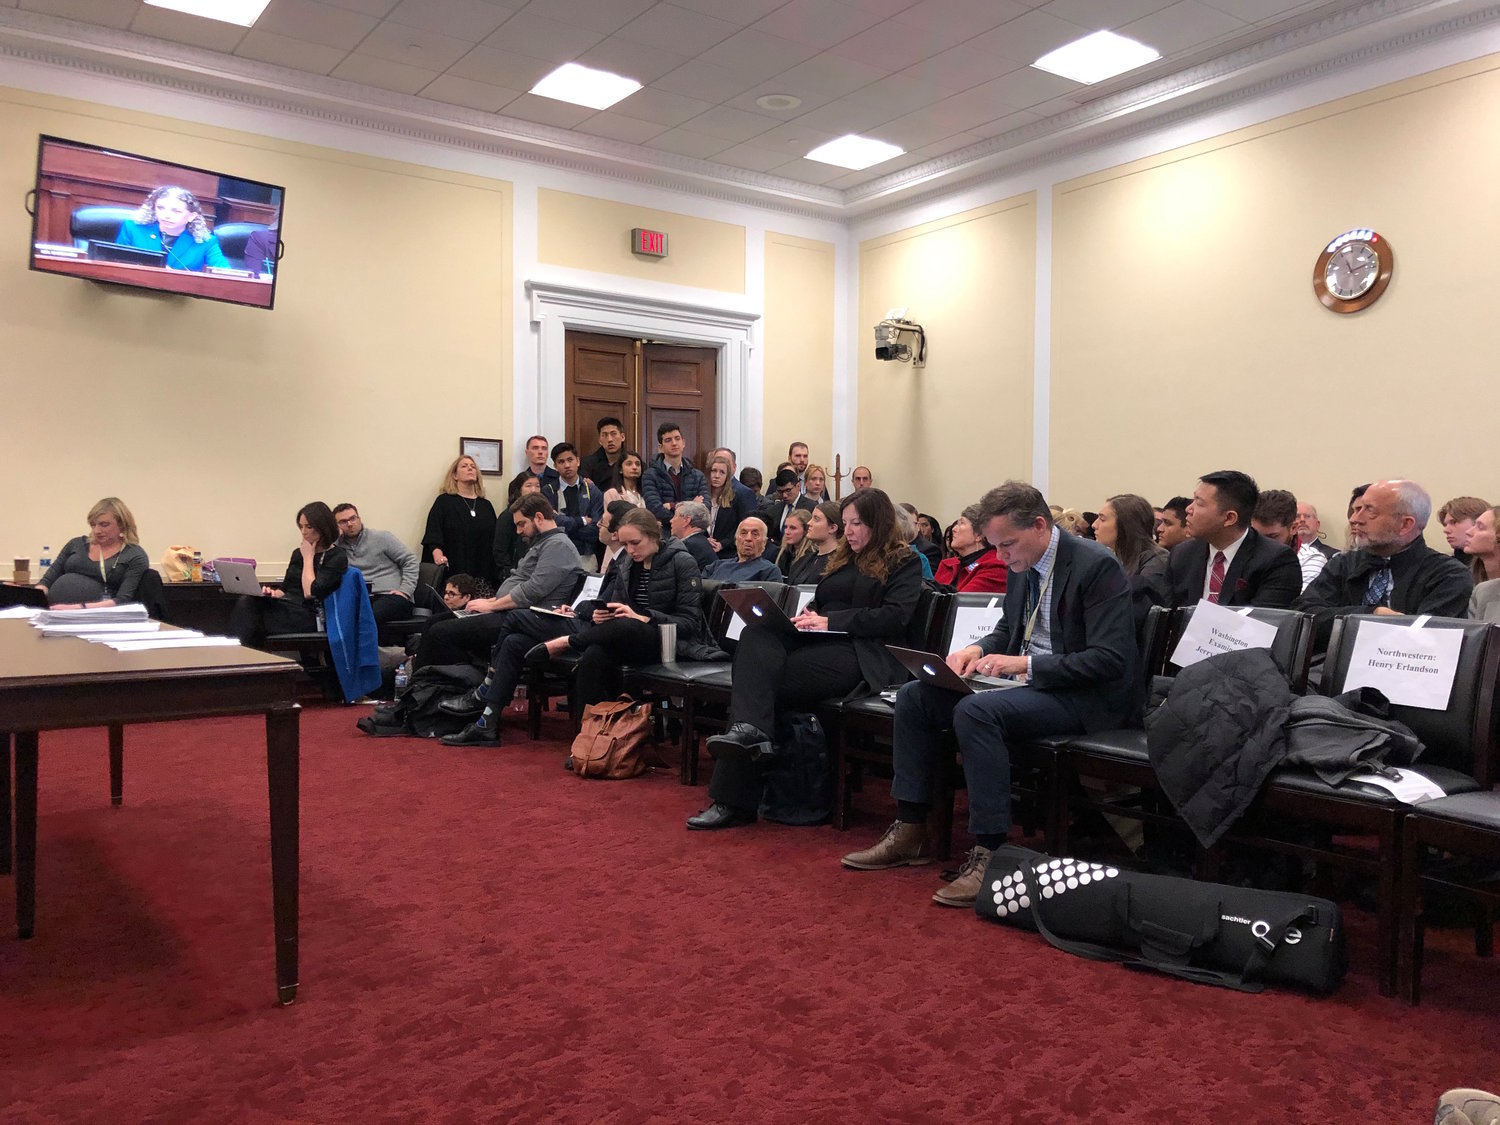 Press row and other observers watched U.S. Rep. Debbie Wasserman Schultz, a Democrat from Florida, question Michael Cohen during the House Oversight and Reform Committee hearing last week.